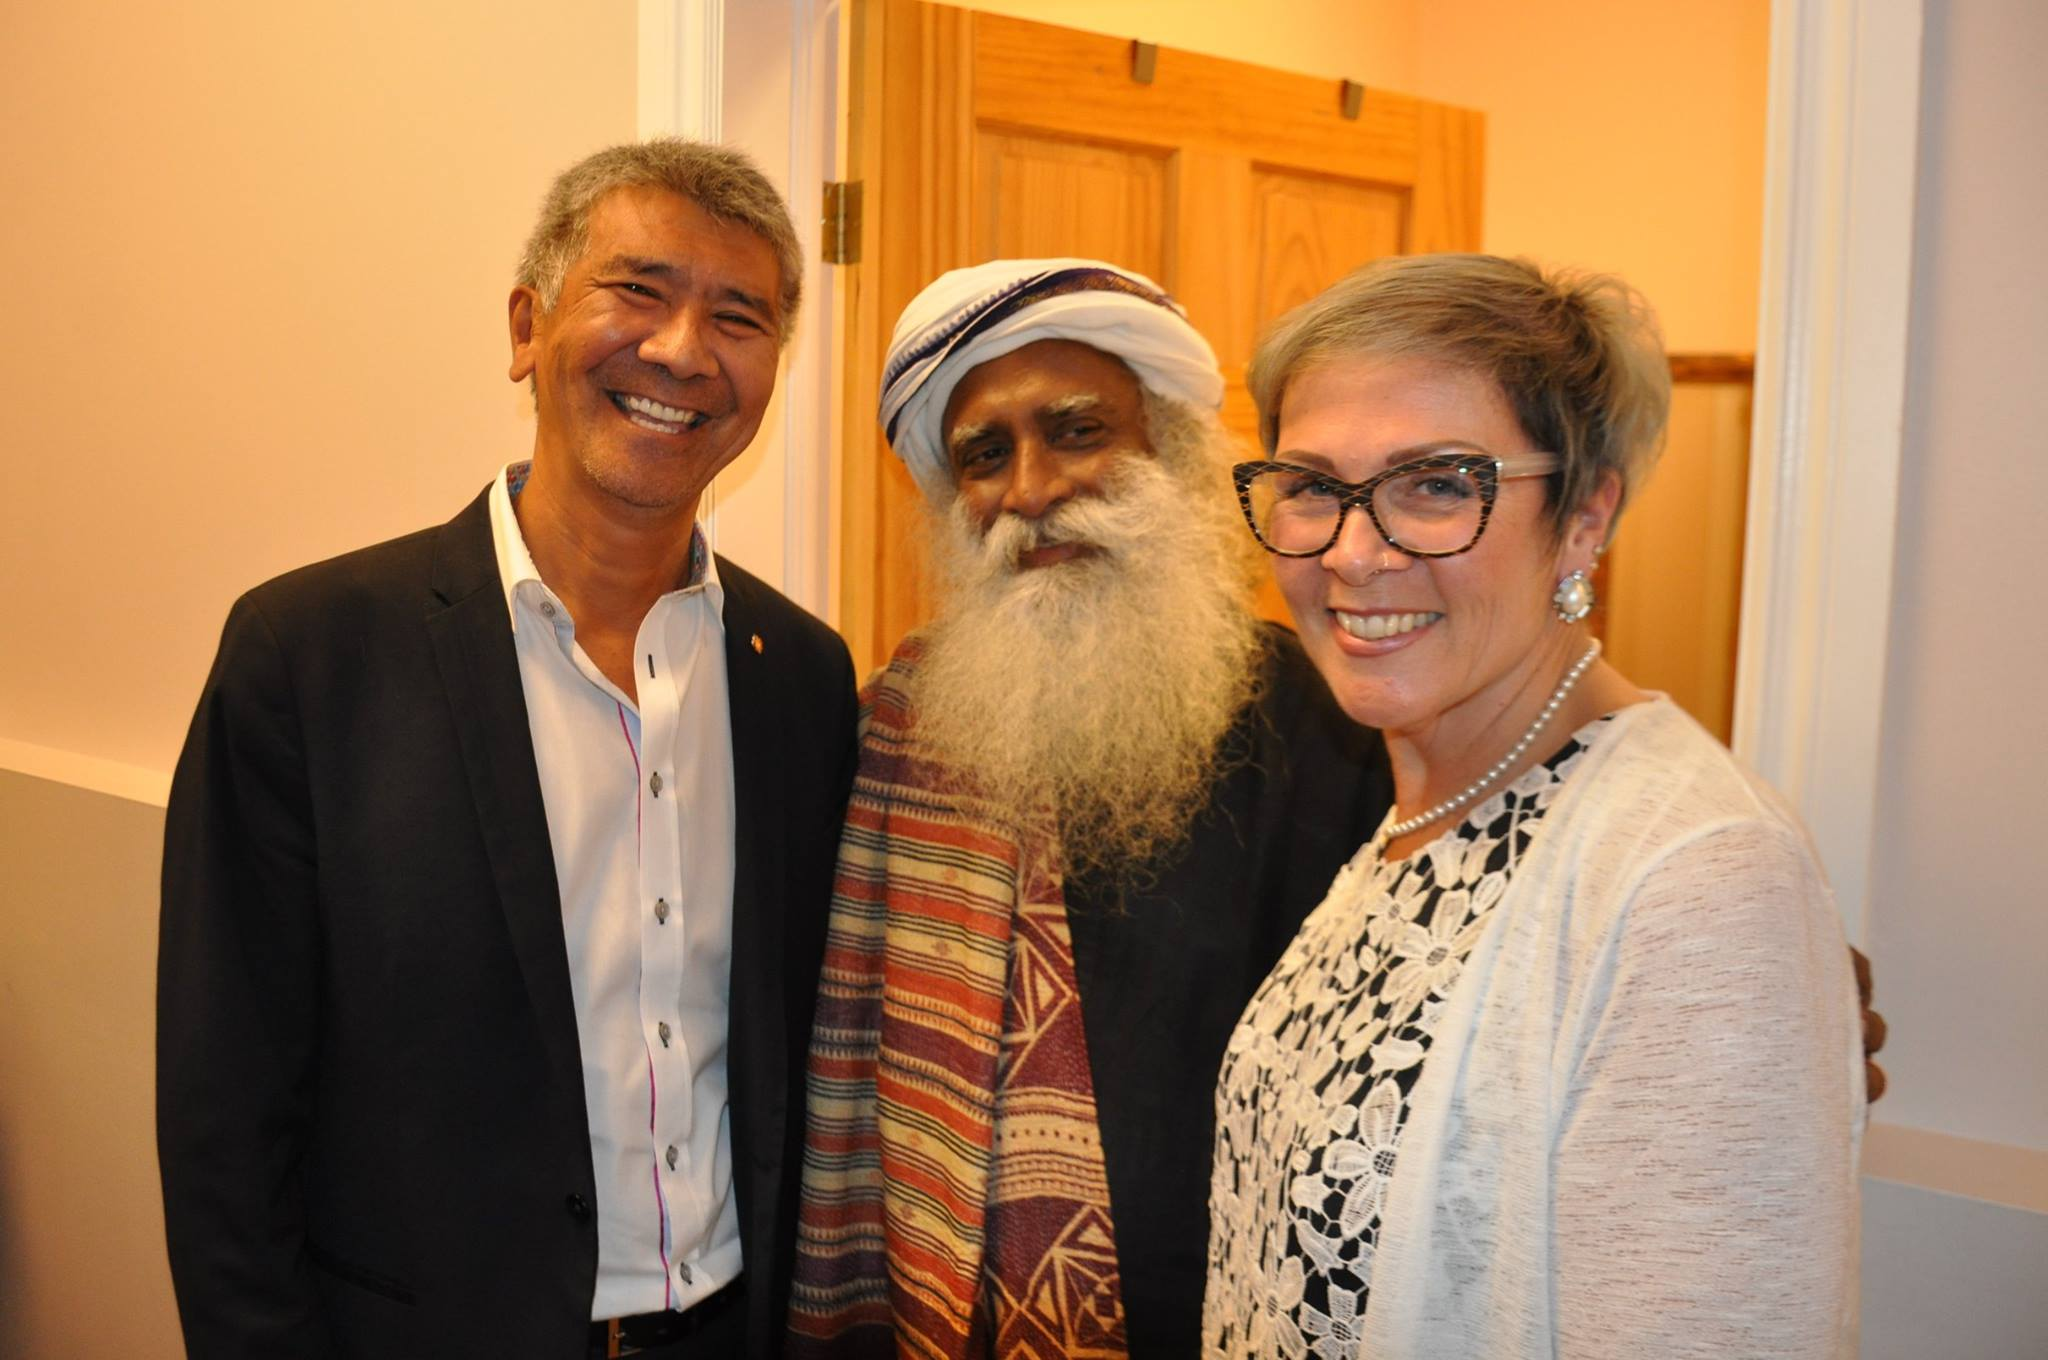 Appreciation - Sadhguru and Clarington Deputy Mayor Willie Woo